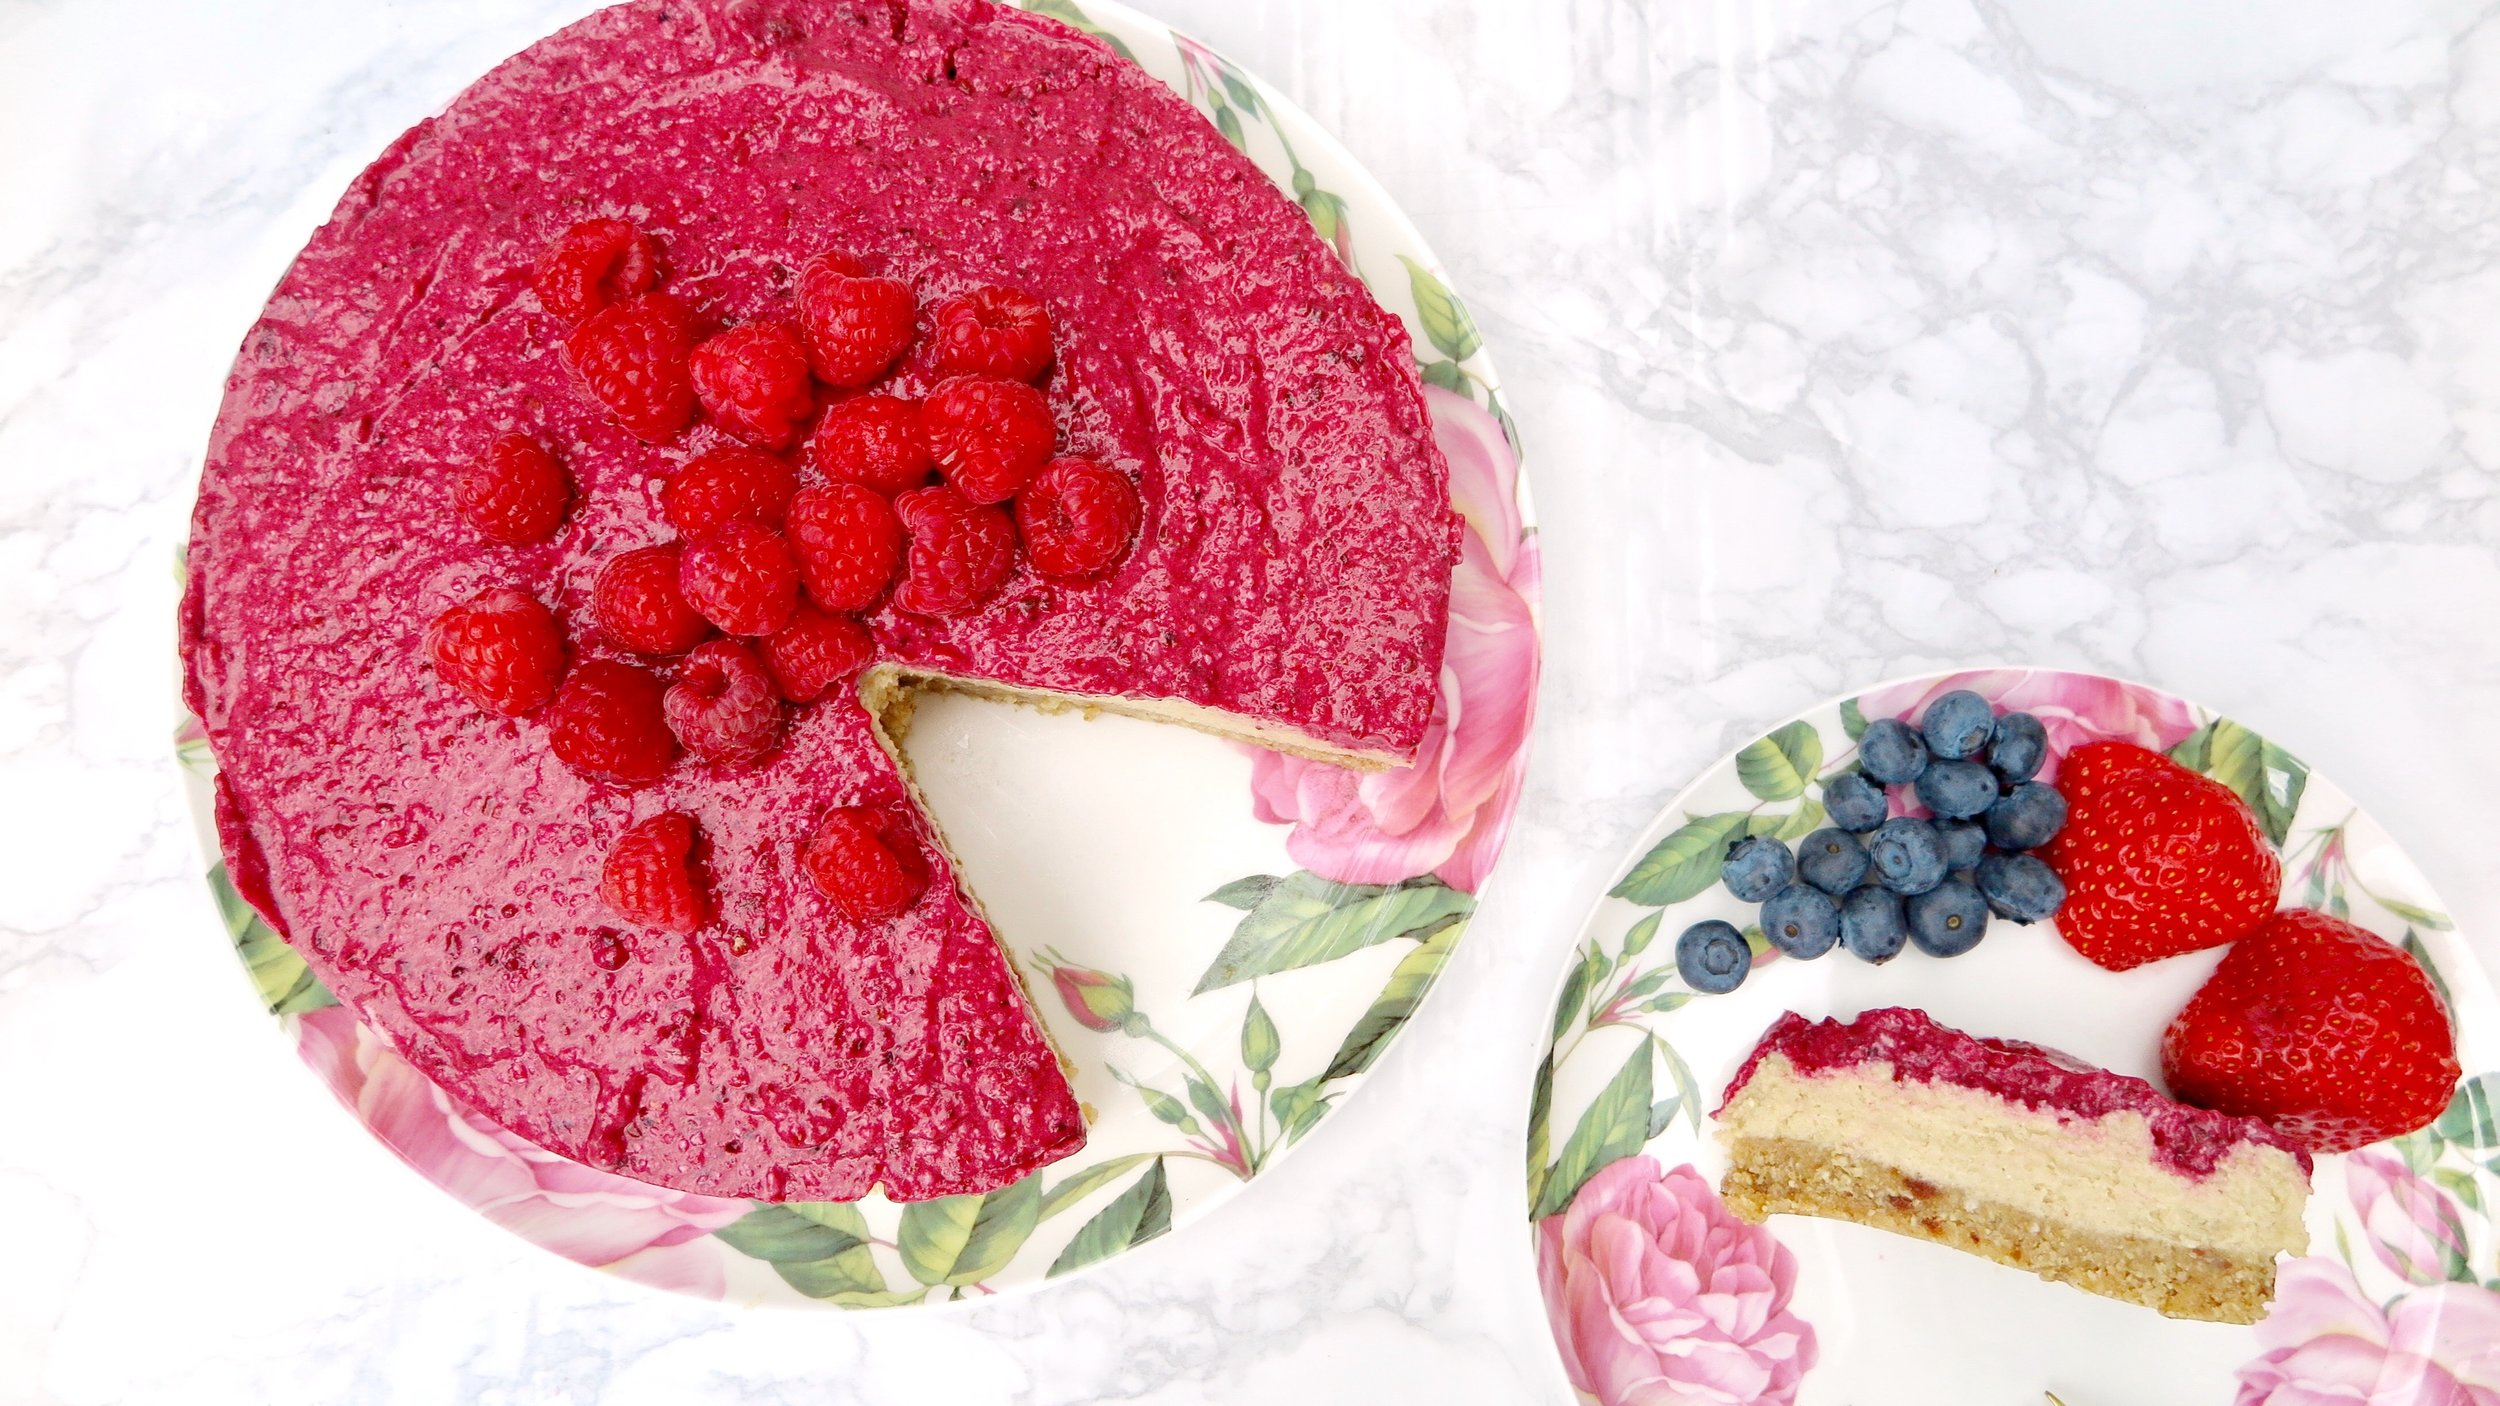 vegan lemon and berry cheesecake recipe